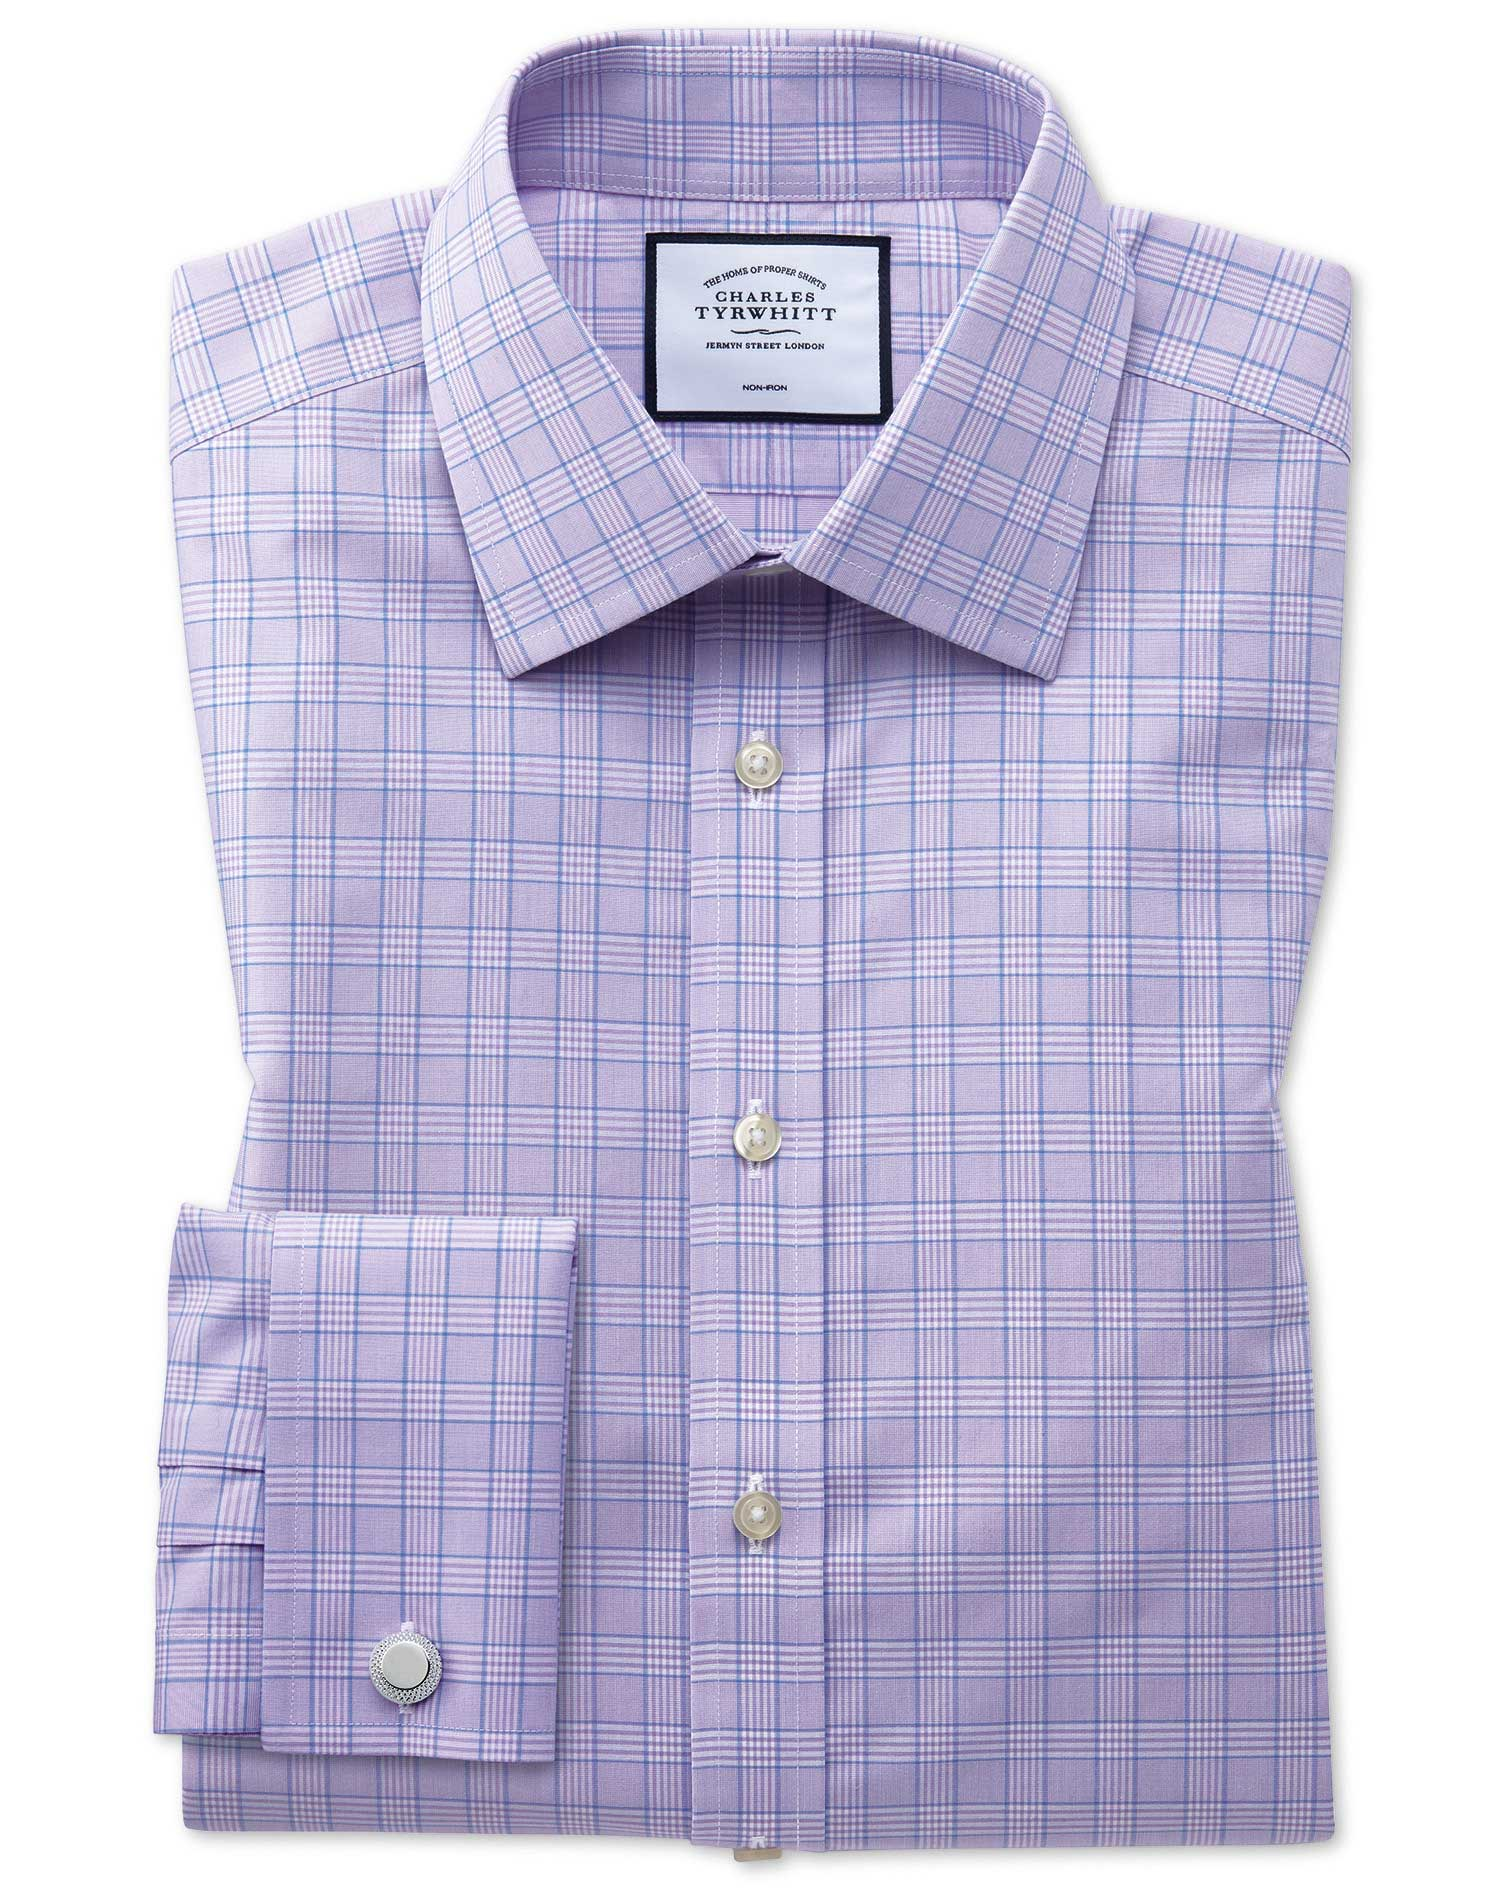 Slim Fit Non-Iron Lilac and Blue Prince Of Wales Check Cotton Formal Shirt Double Cuff Size 16.5/34